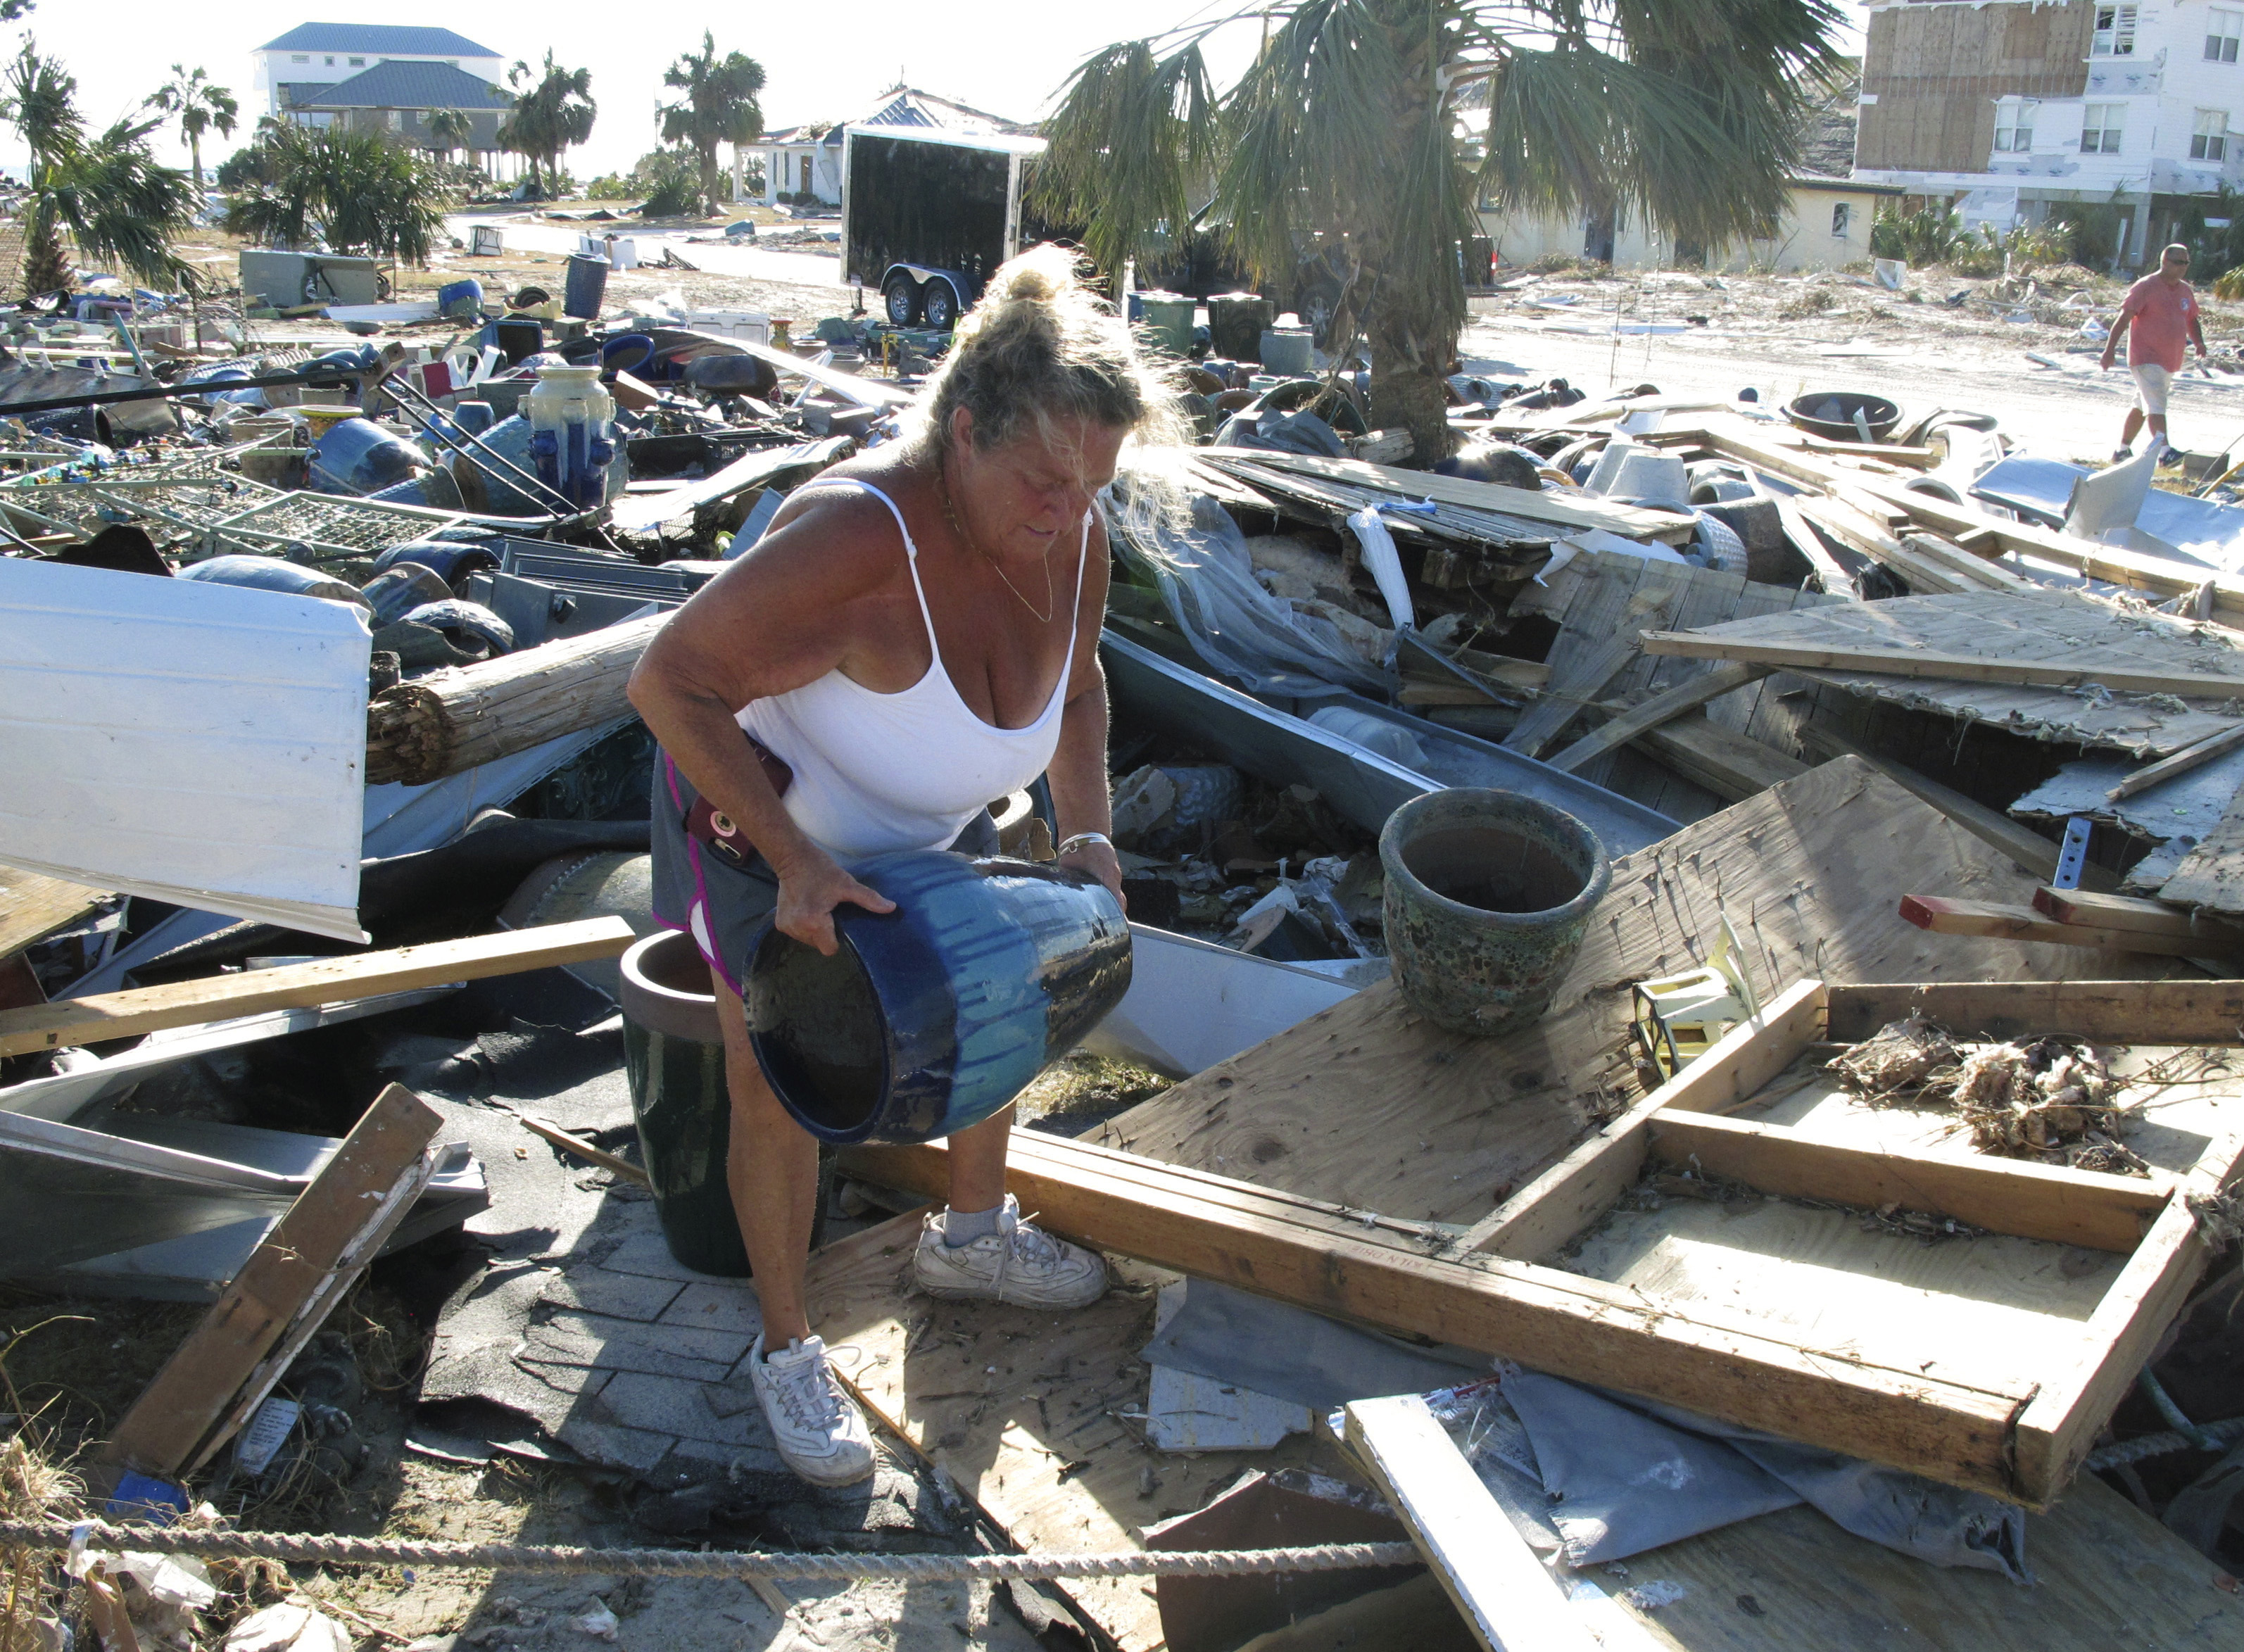 """In this Oct. 14, 2018 photo Dena Frost salvages an unbroken clay pot from the wreckage of her pottery business in Mexico Beach, Fla. For decades, the town has persisted as a stubbornly middlebrow enclave on what residents proudly refer to as Florida's """"Forgotten Coast."""" Businesses are locally owned. While some locals owned posh homes that overlooked the beach on stilts, many lived in mobile homes. (AP Photo/Russ Bynum)"""